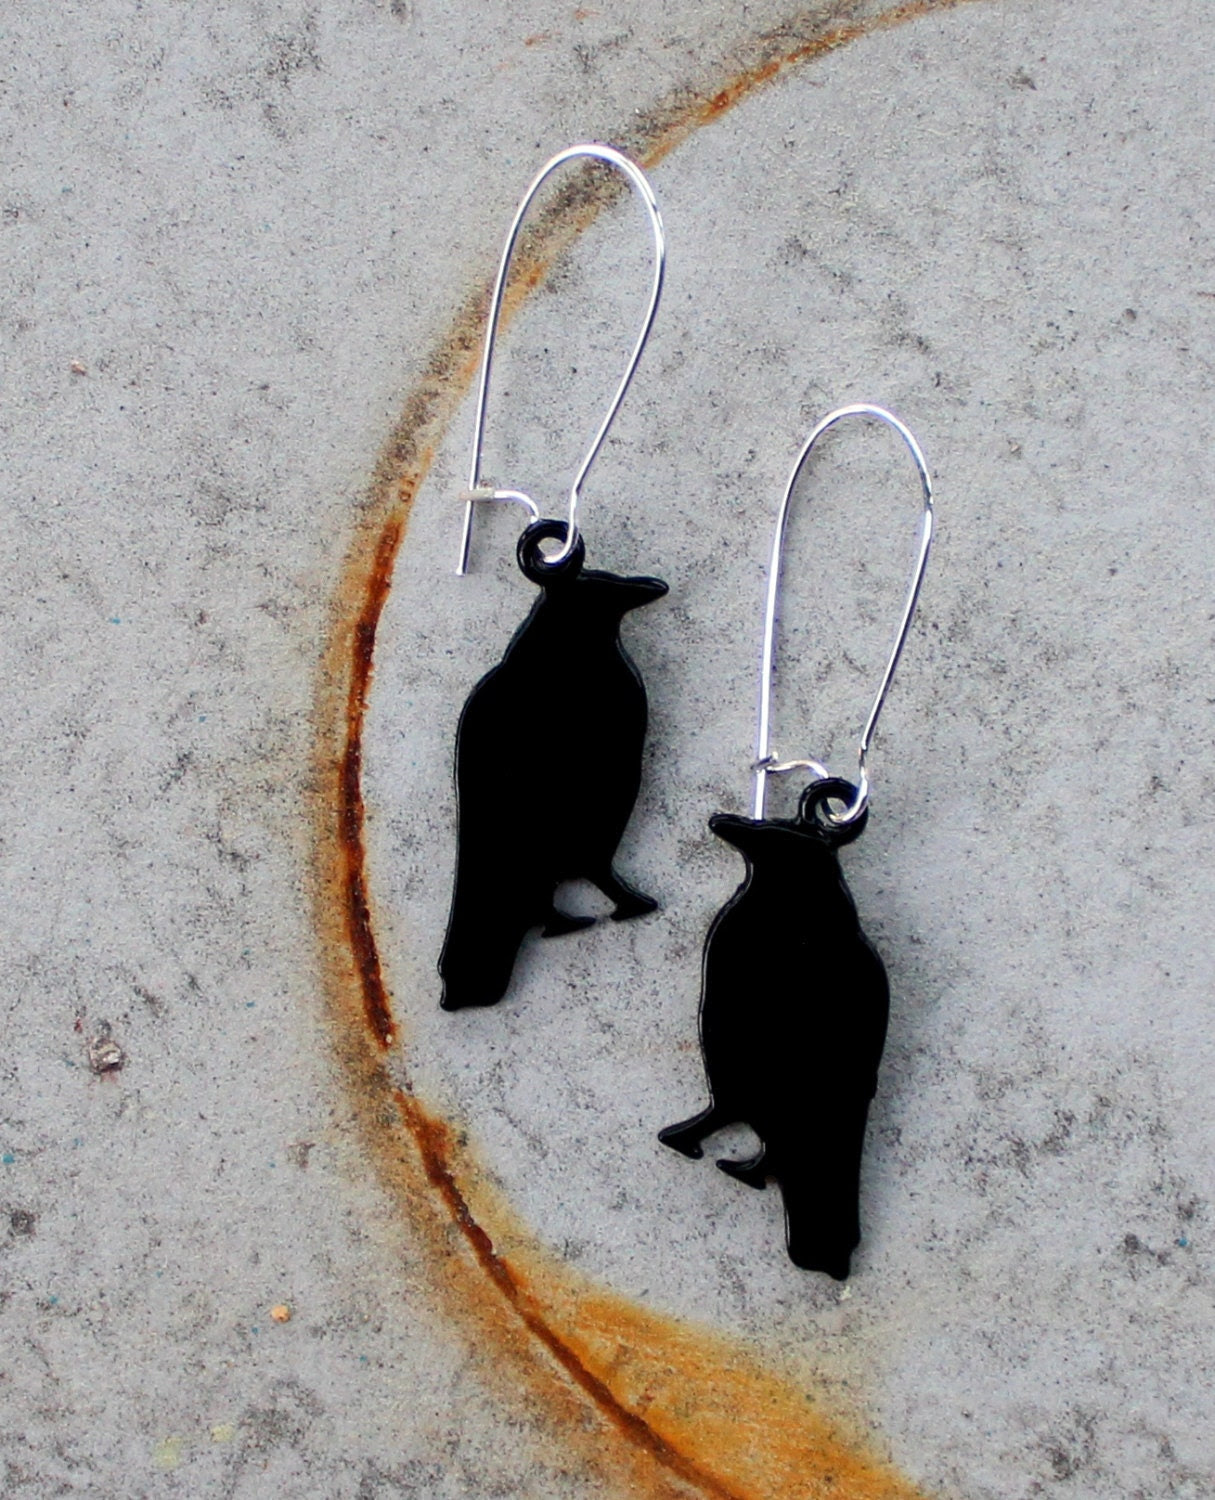 Black Crow Earrings/Raven Earrings on Silver Wire- Dangle Earrings, Bird Earrings - MINTJULEPdesign